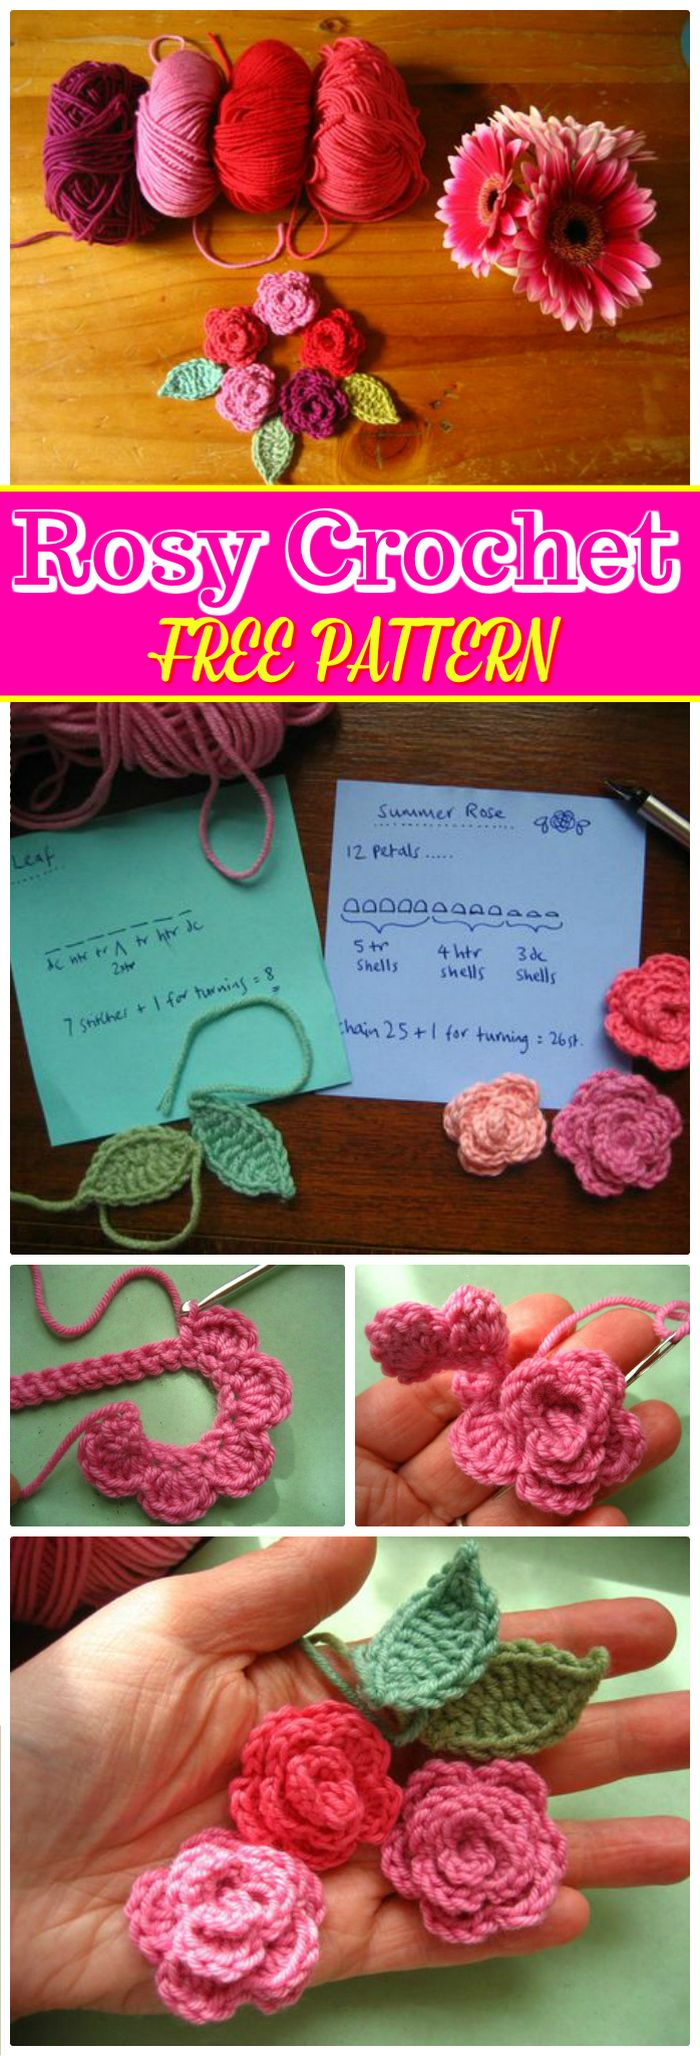 crochet flower pattern free | crochet flower pattern | crochet flower pattern free easy